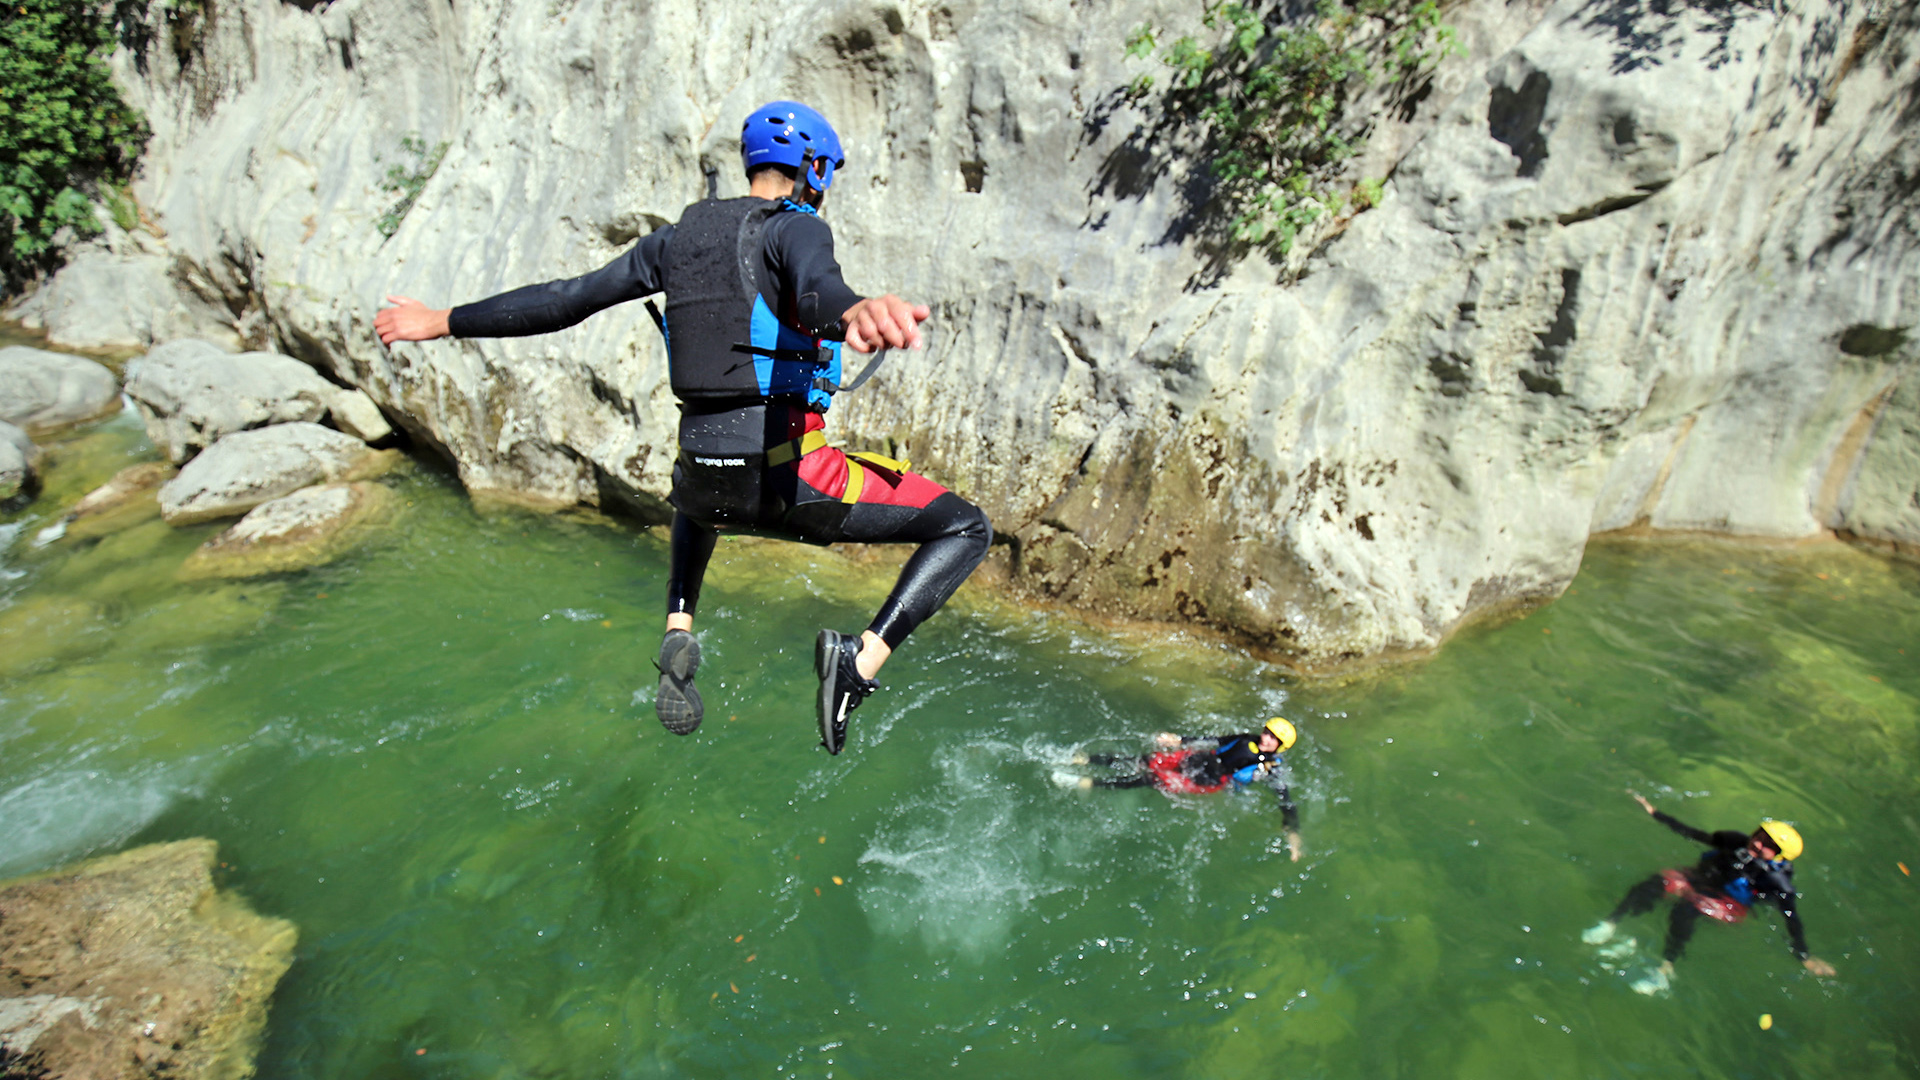 river canyoning adrenaline adventure 8